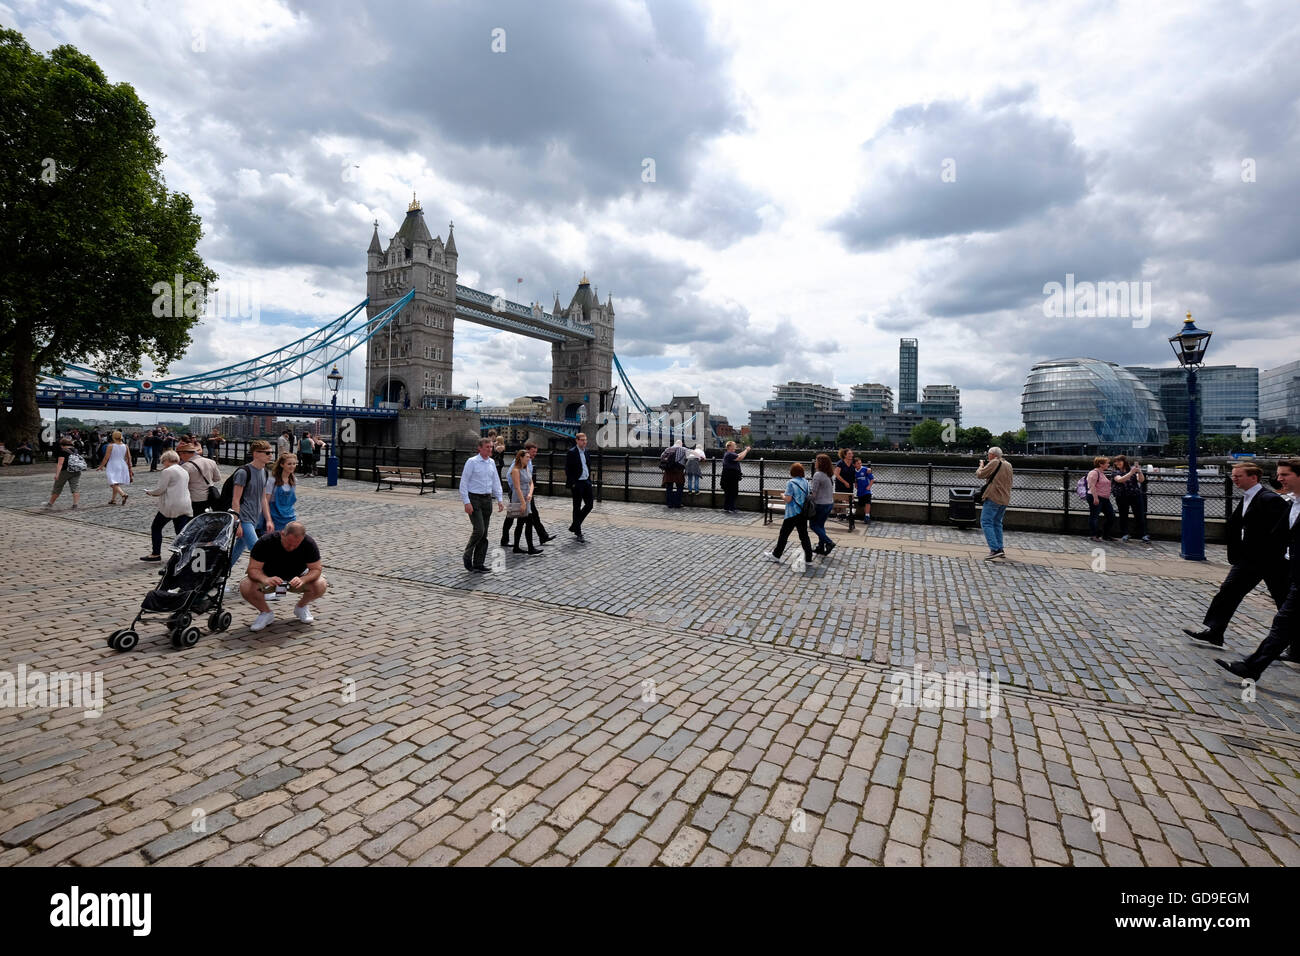 Tourists on Victoria Embankment London with Tower Bridge on the left and City Hall on the right in the background - Stock Image